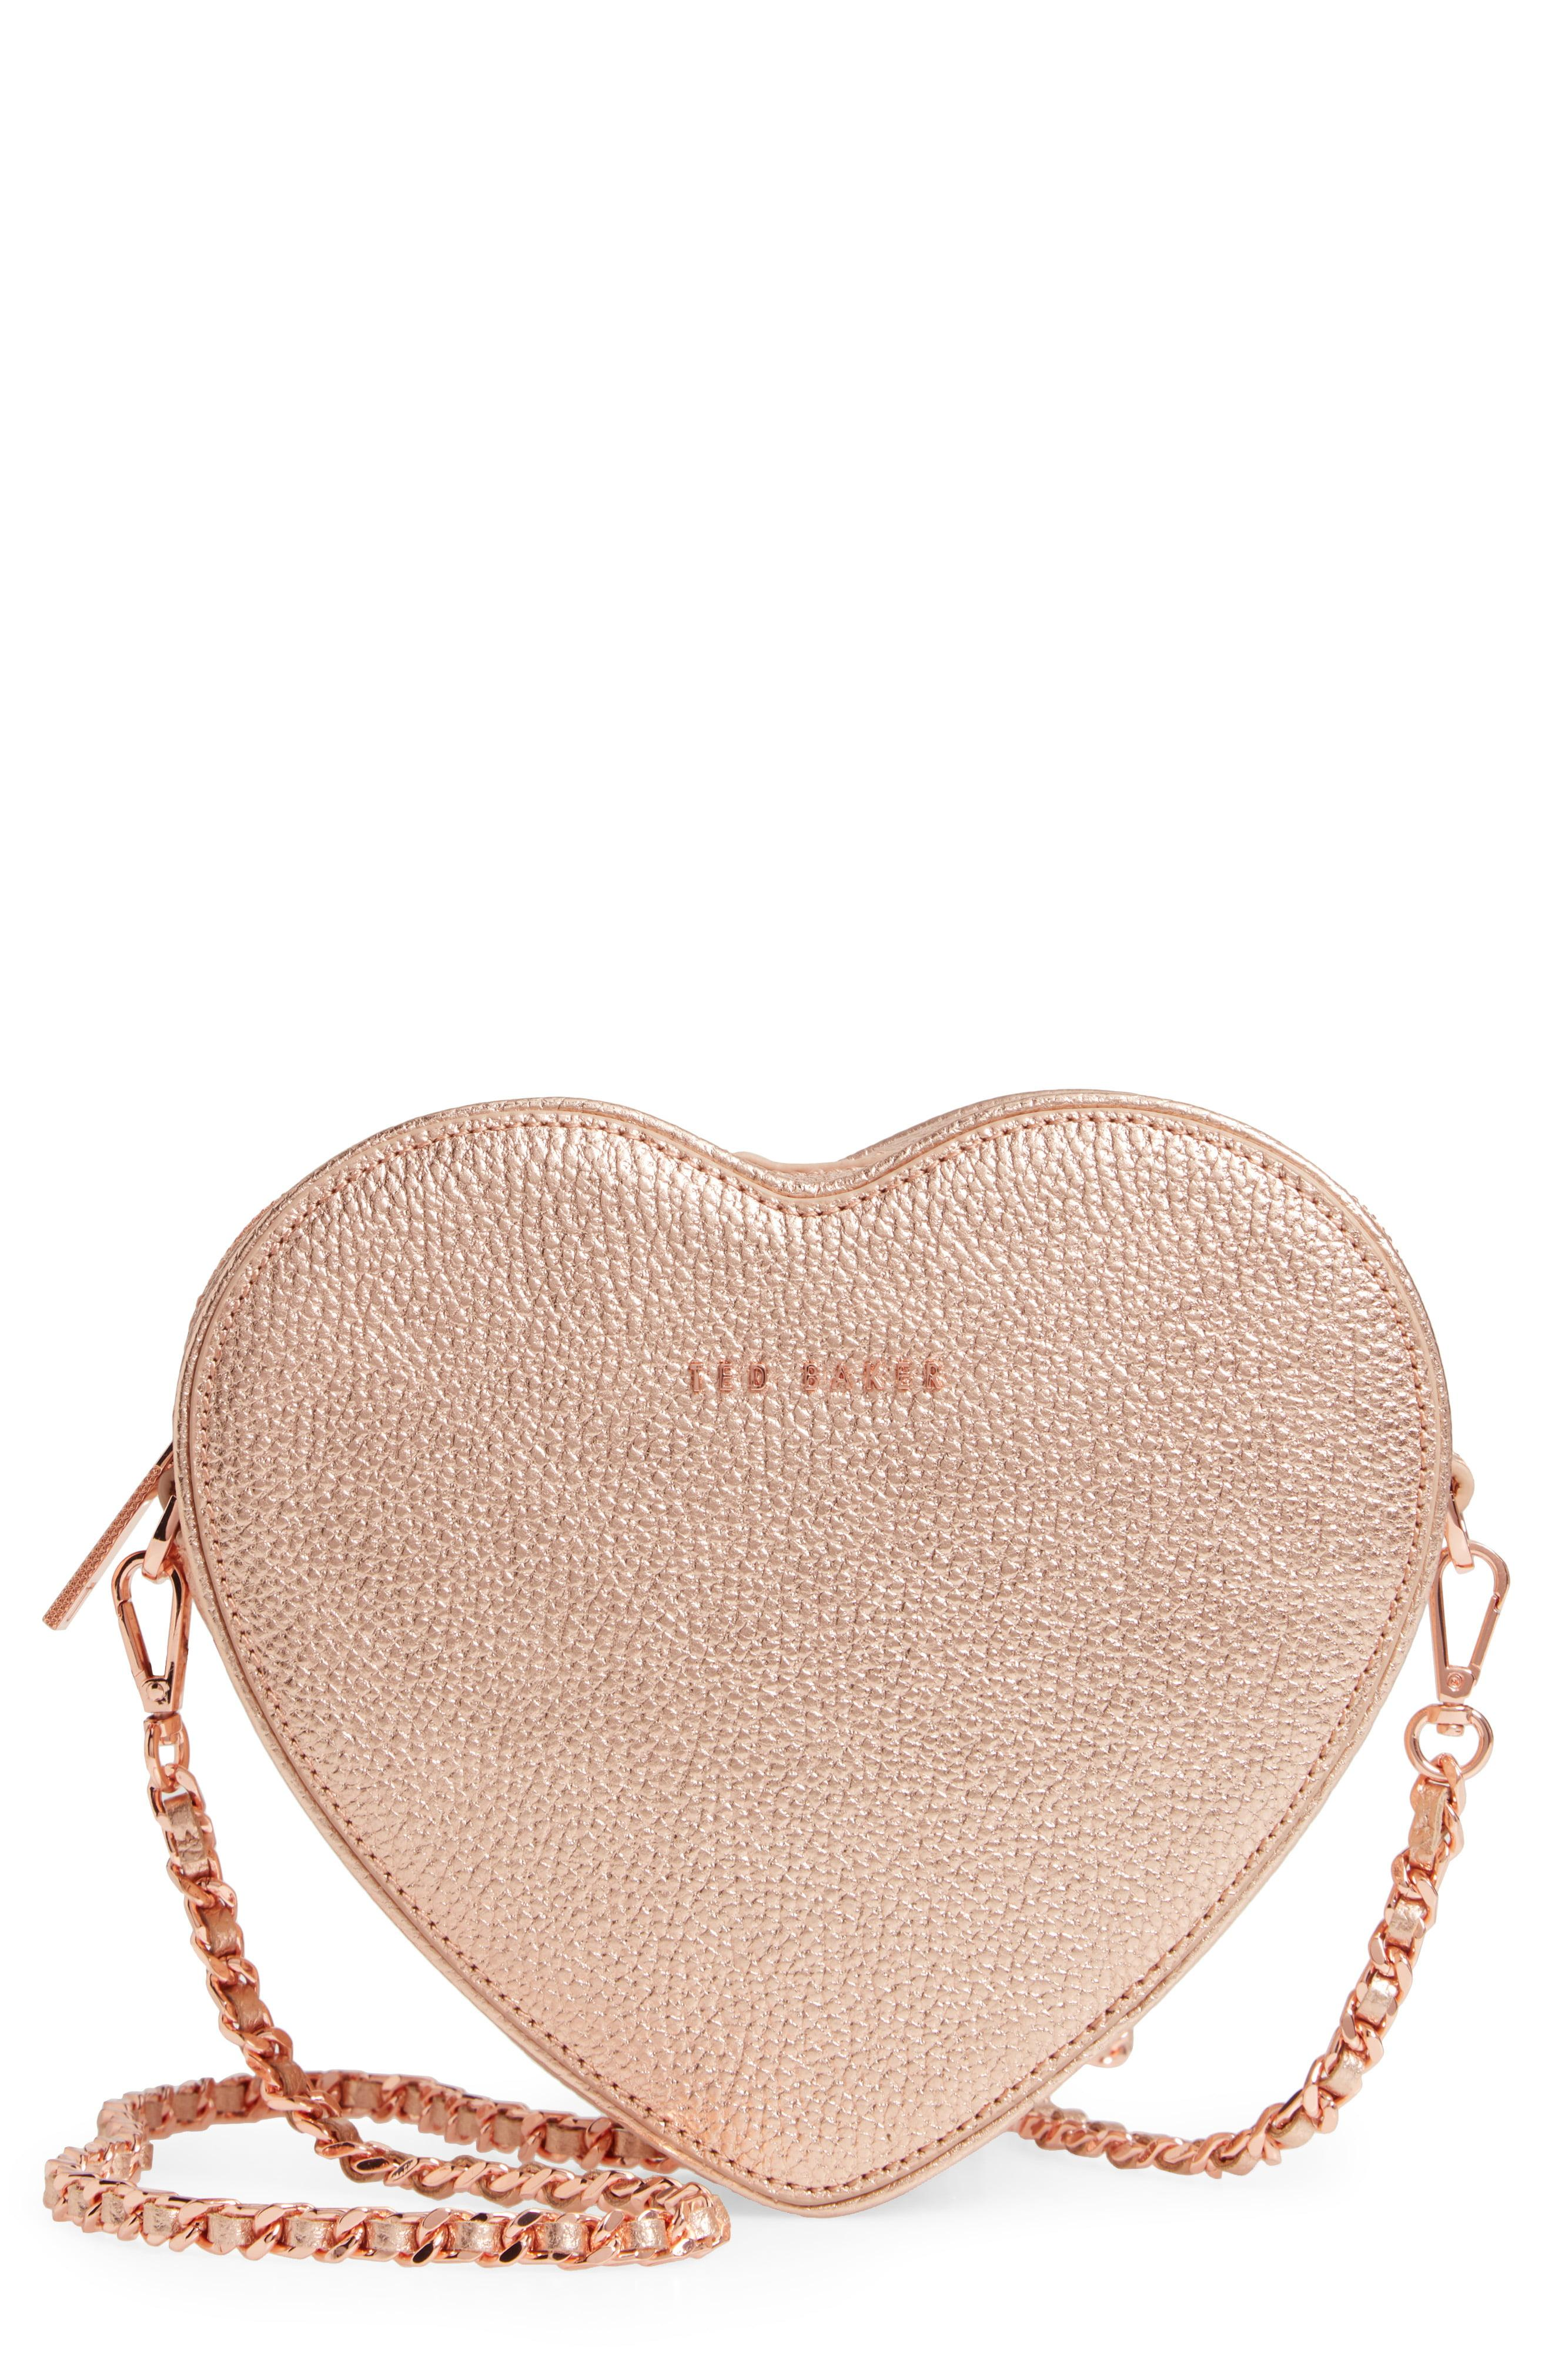 f32907e80 Lyst - Ted Baker Amellie Leather Crossbody Bag - Metallic in Pink ...